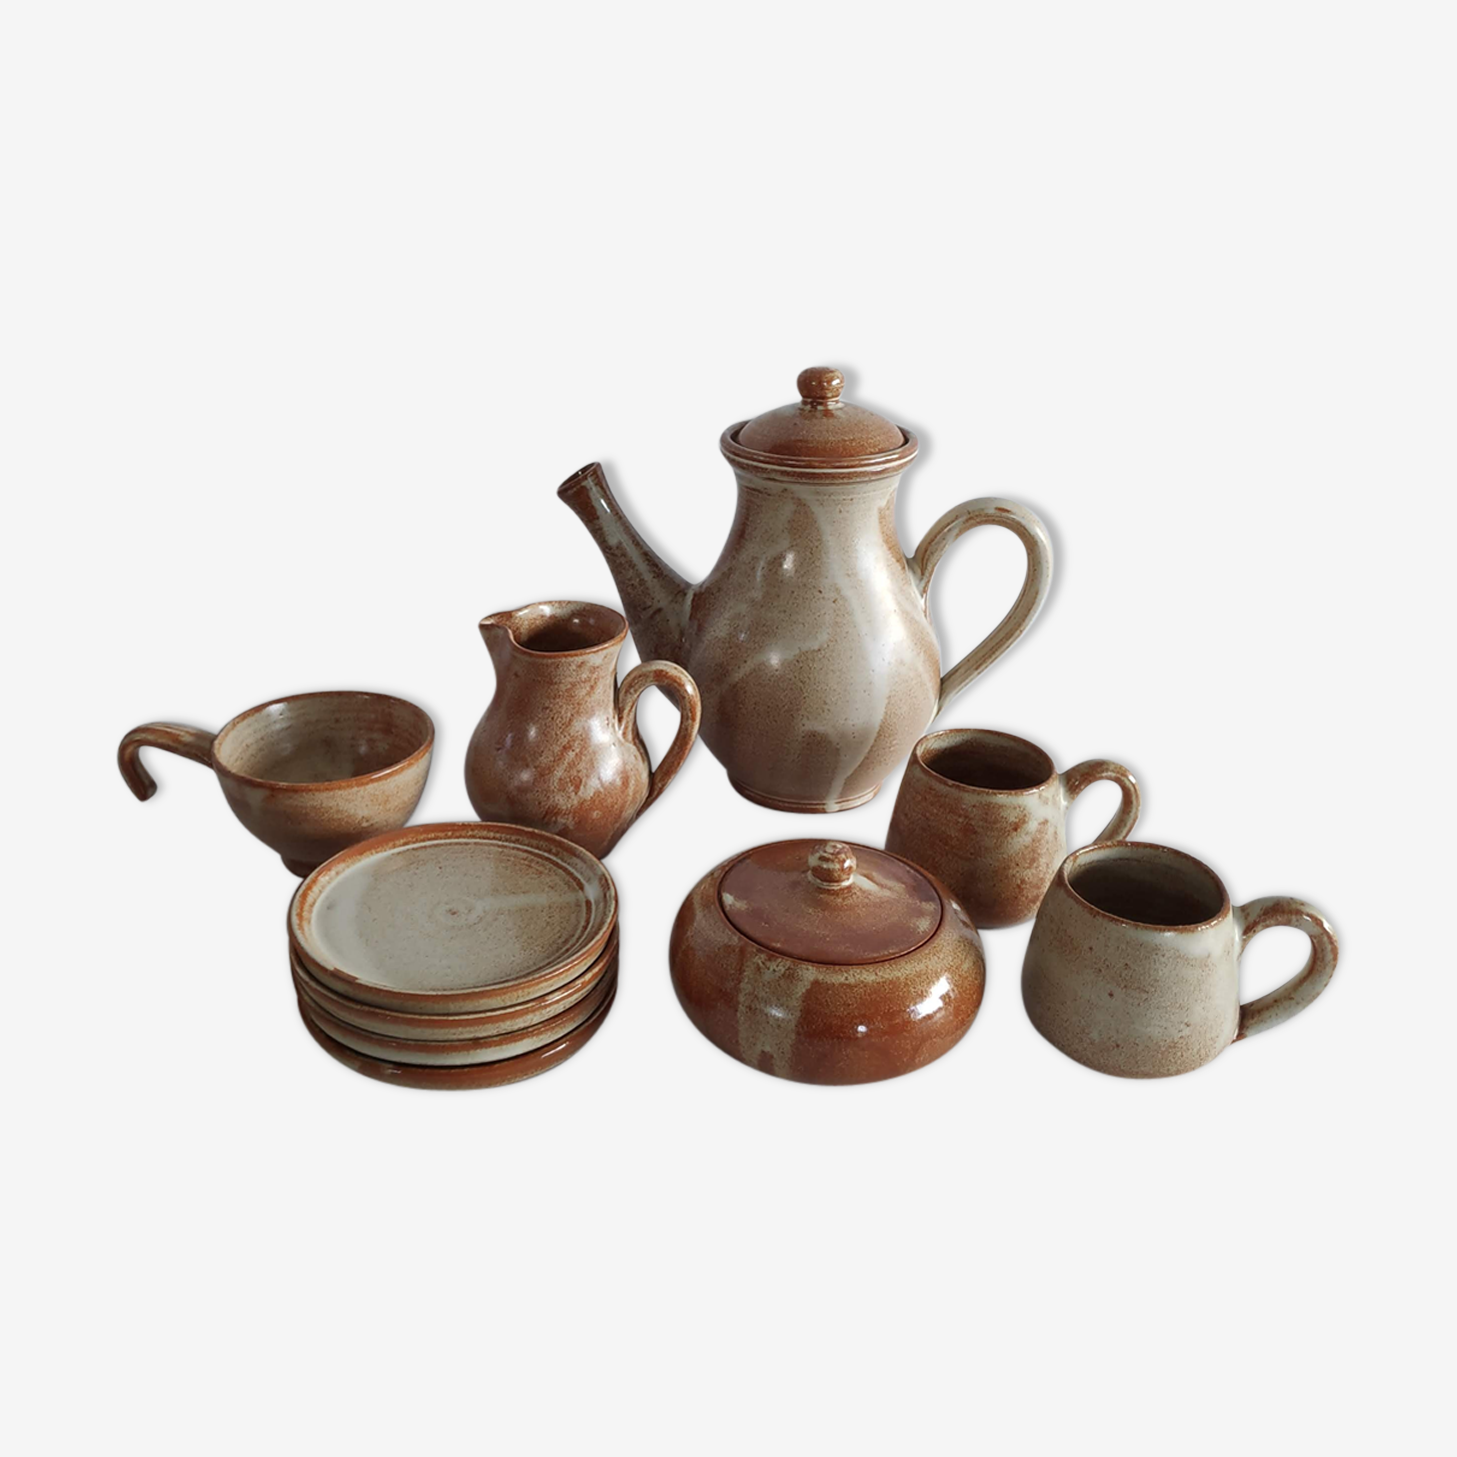 Serving tea or coffee vintage from the 60s in sandstone